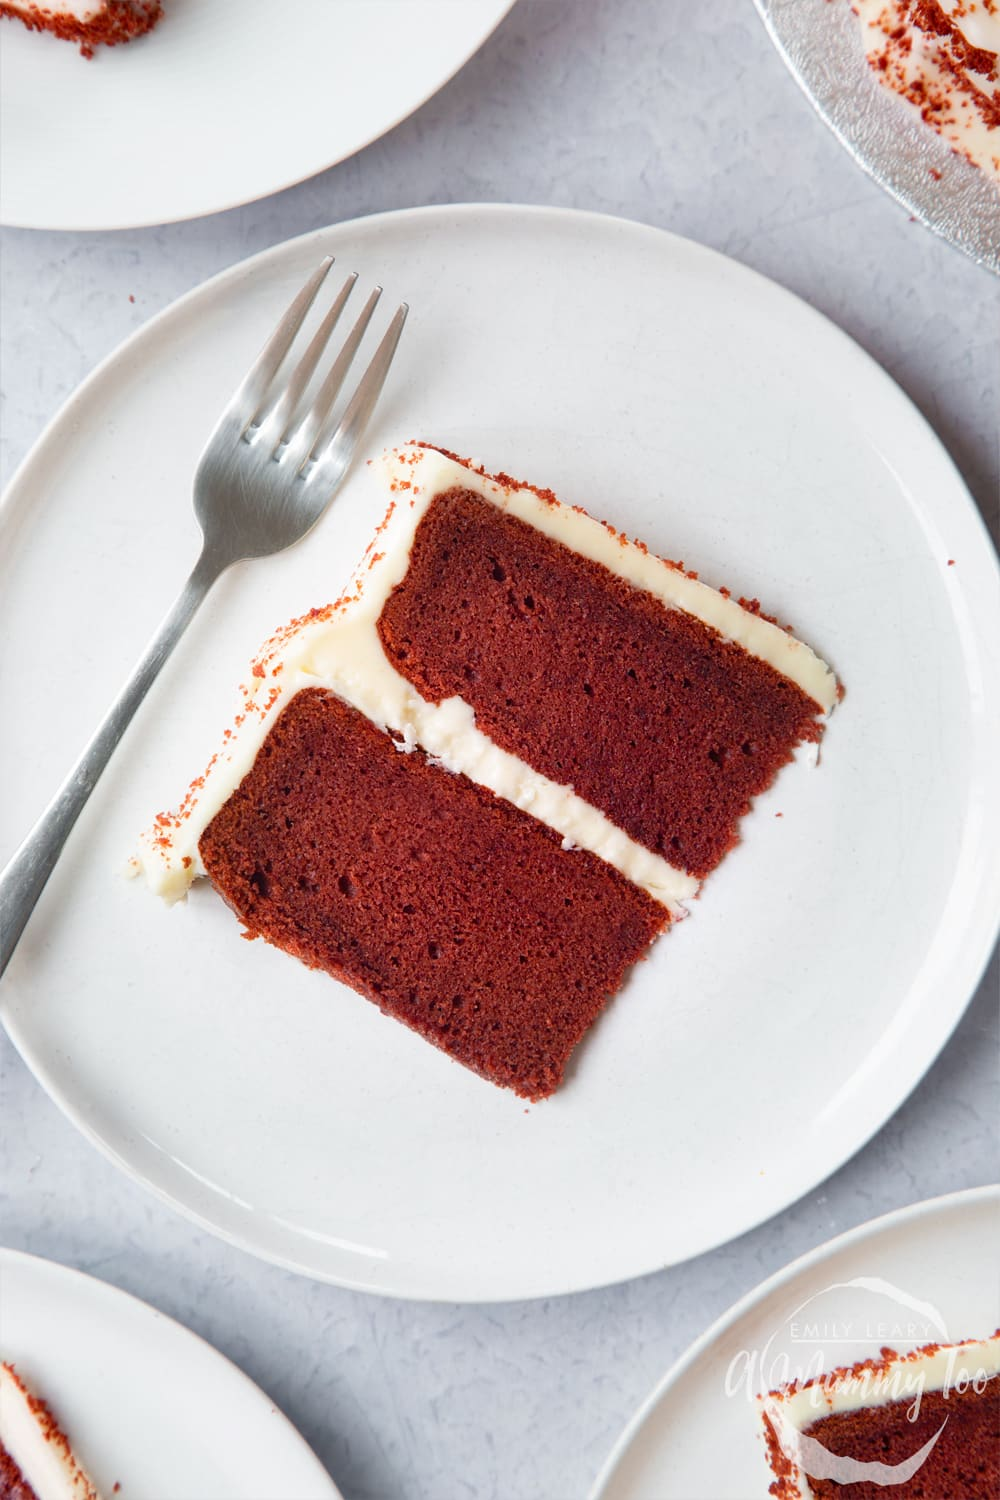 A slice of filled red velvet cake on a white plate. A fork rests on the plate.